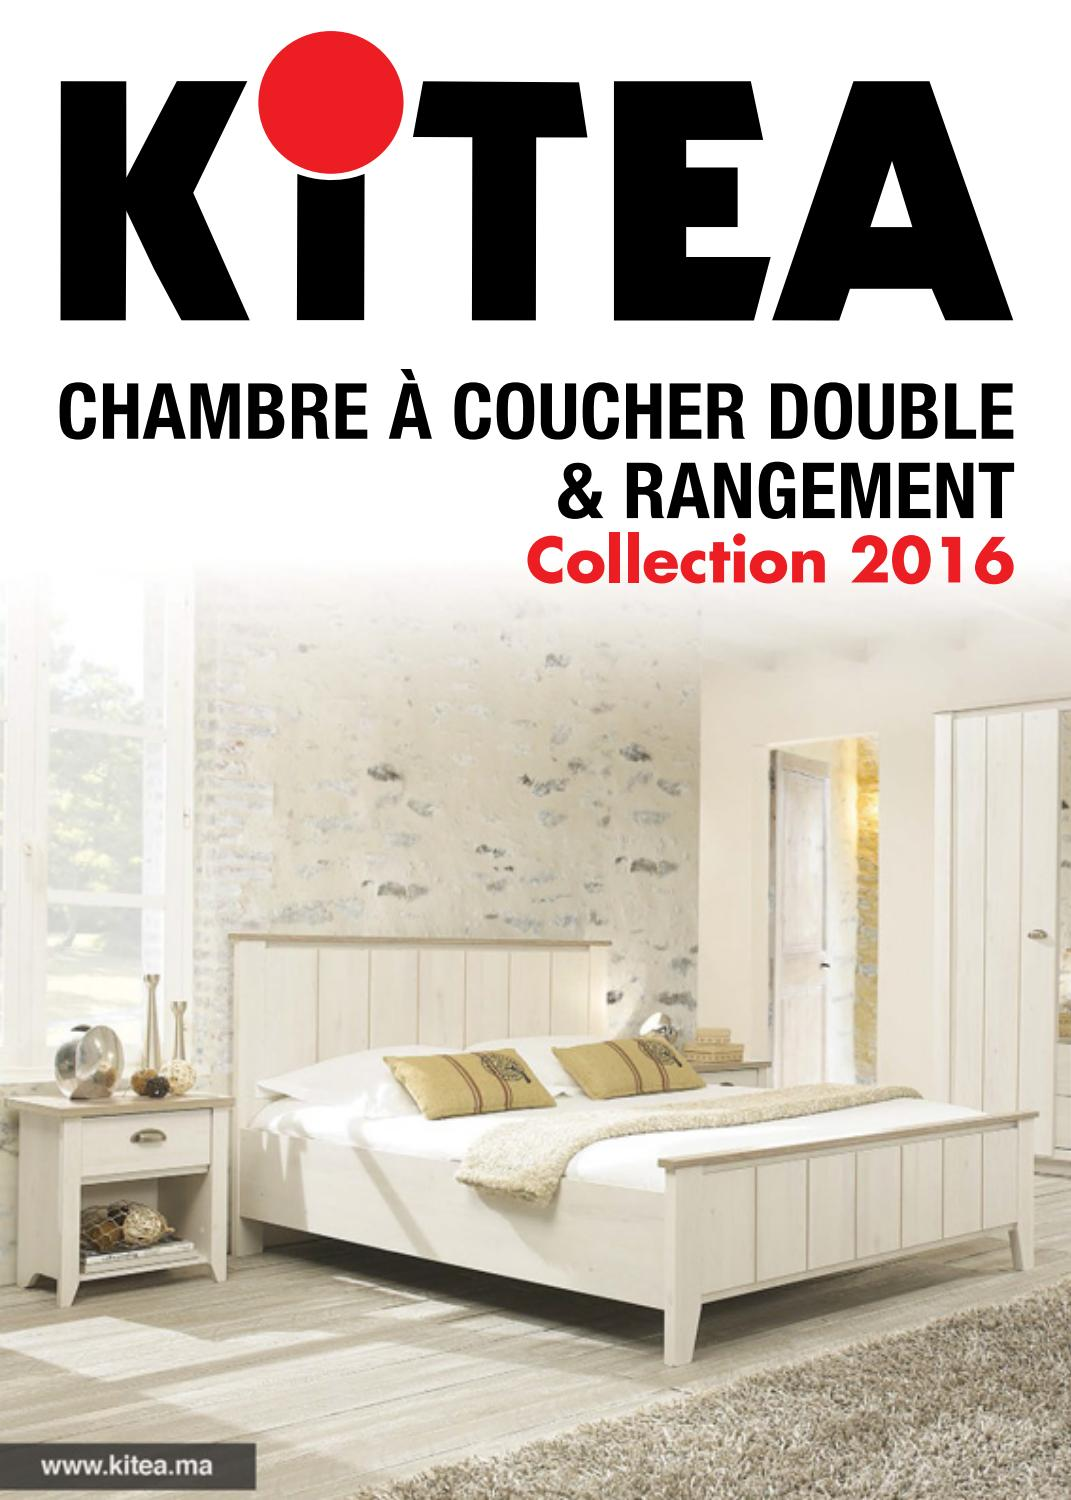 Kitea chambre coucher 2016 by promotion au maroc issuu for Chombre a coucher 2016